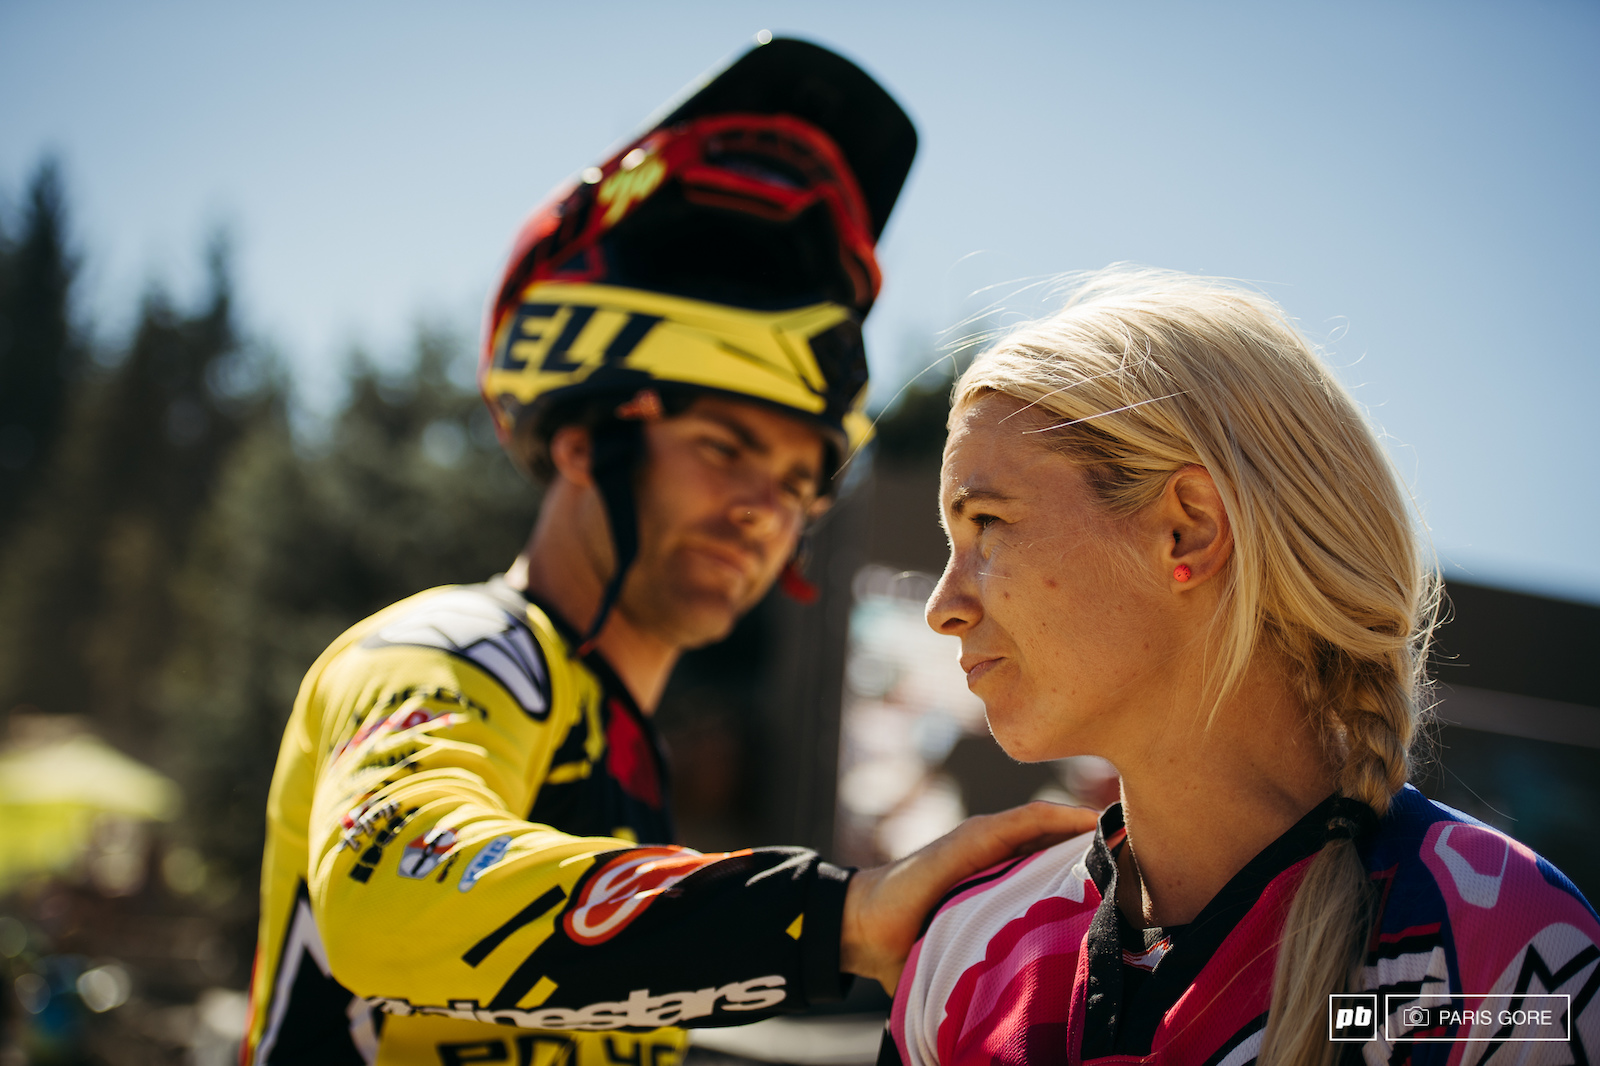 Mick Hannah congratulating his younger sister on her big win today at the Canadian Open DH.